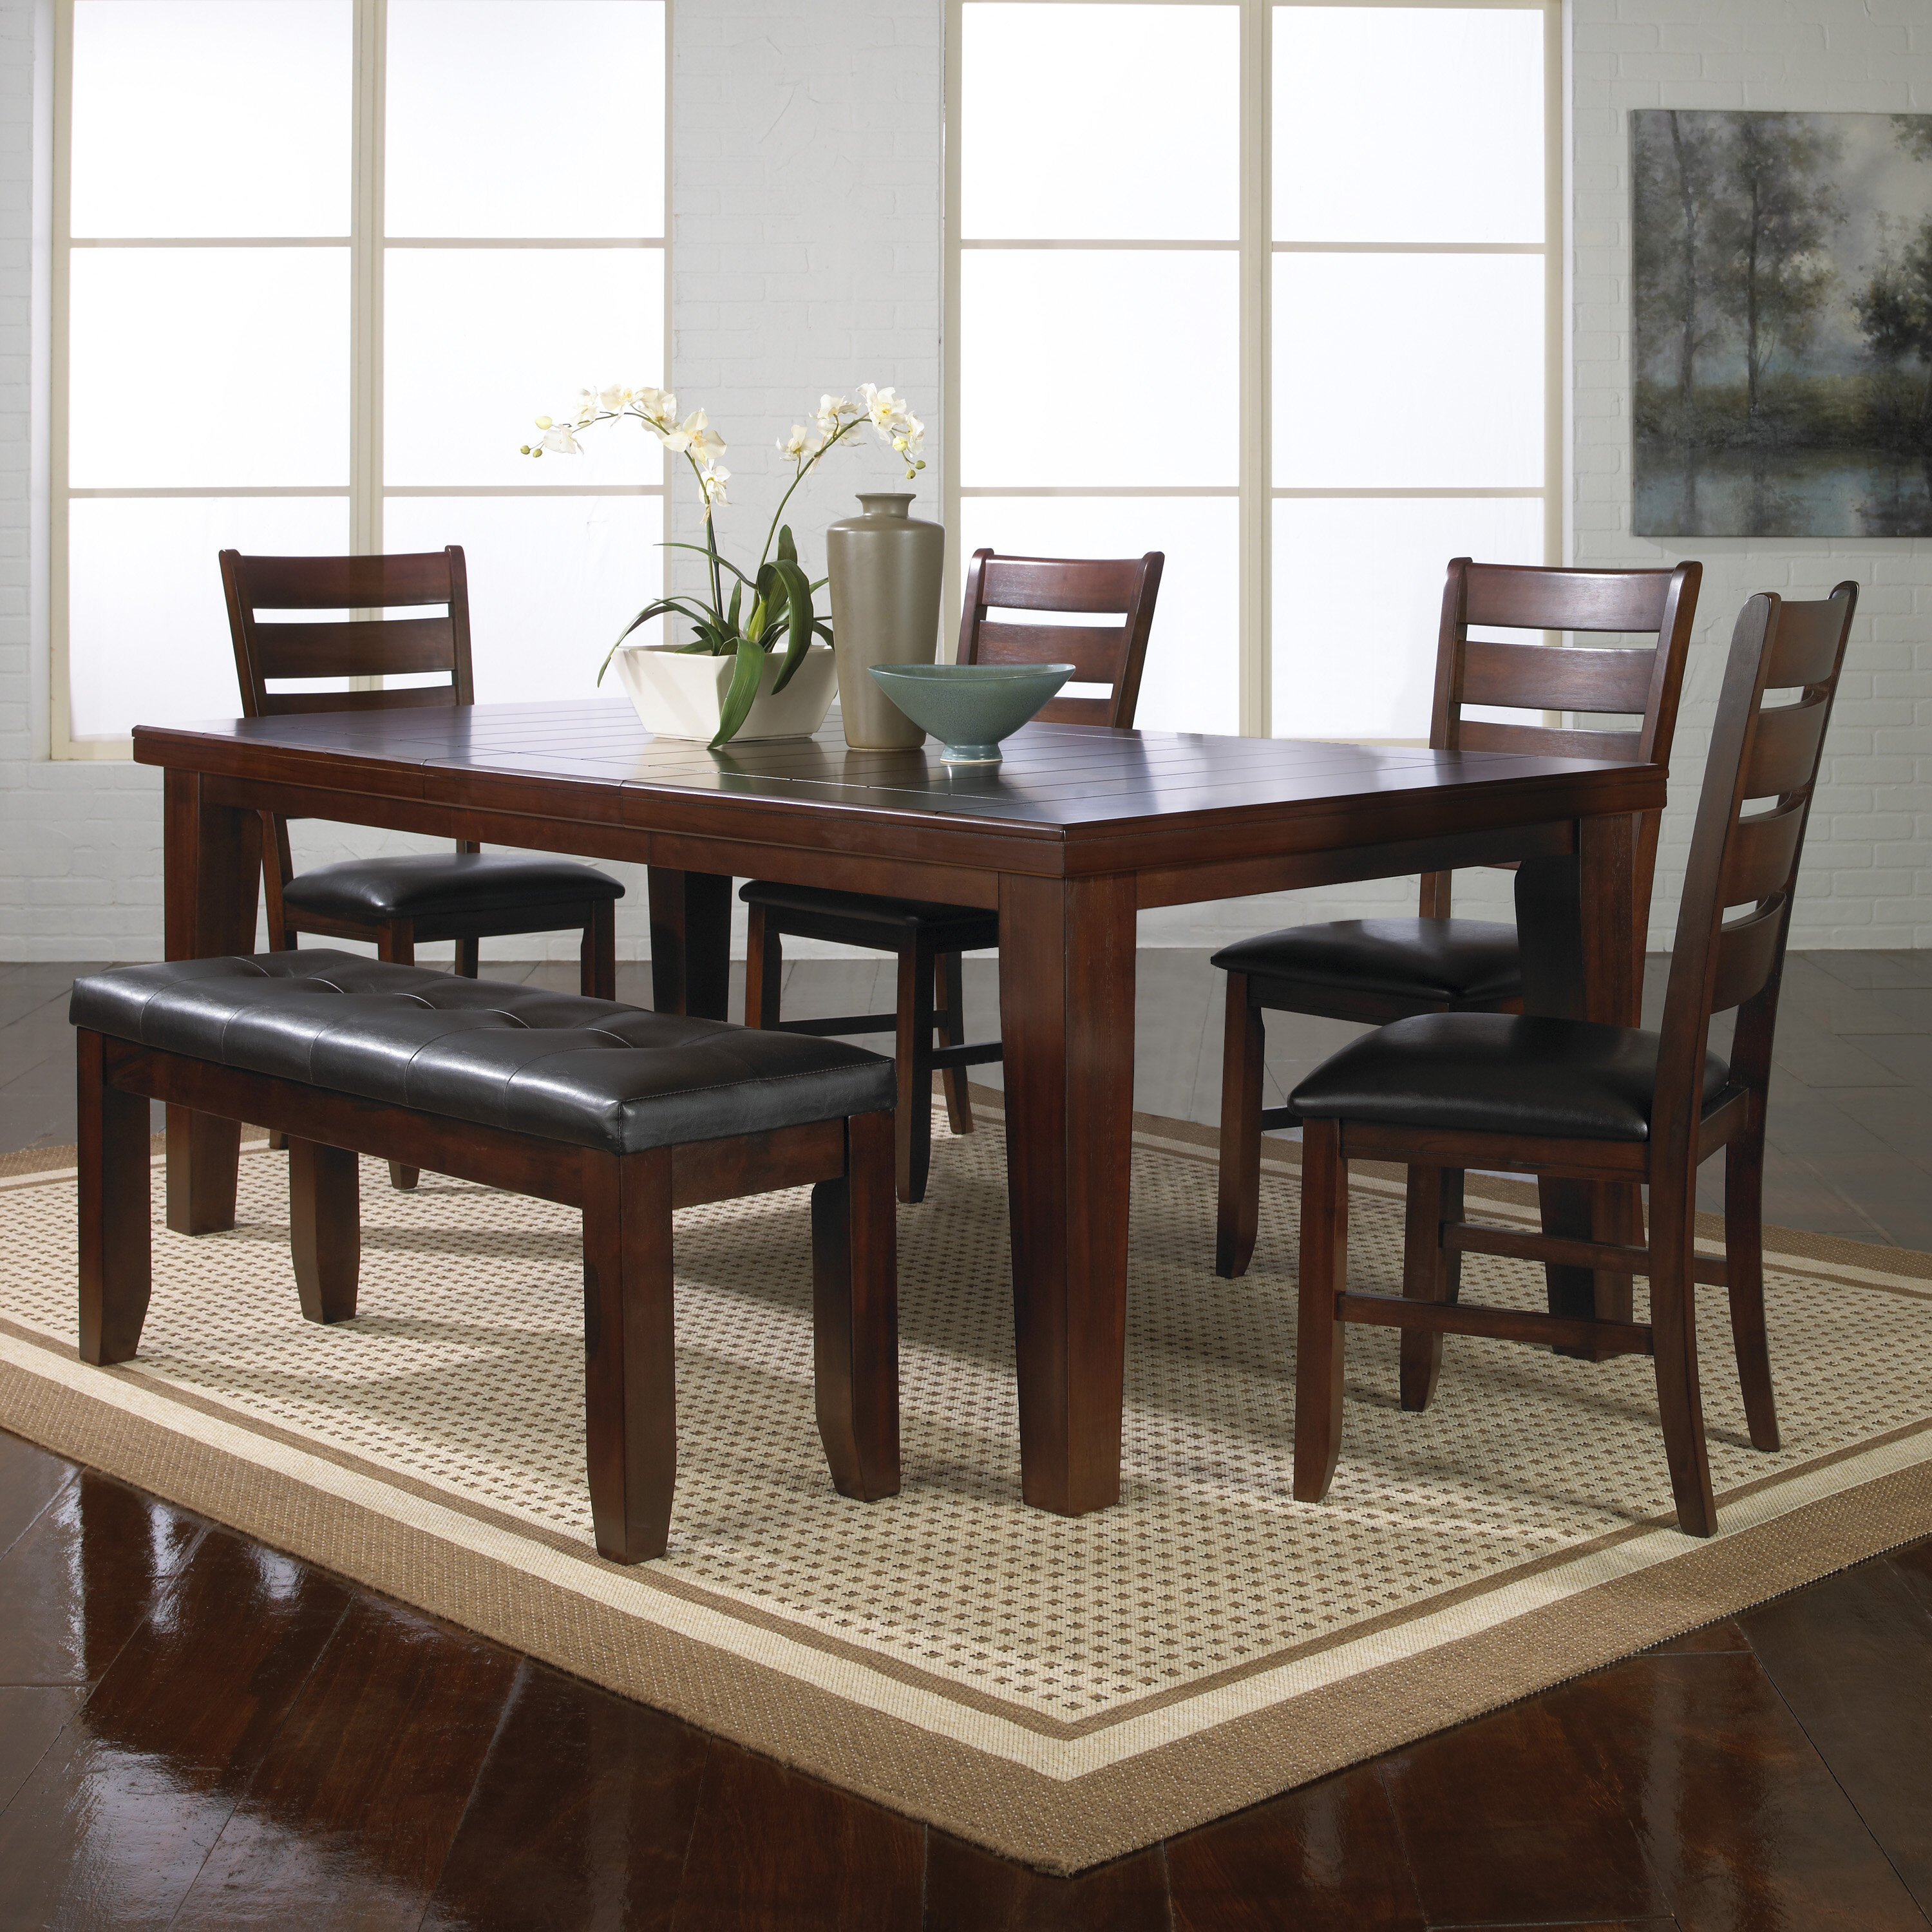 Stephentown 4 Piece Solid Wood Dining Set